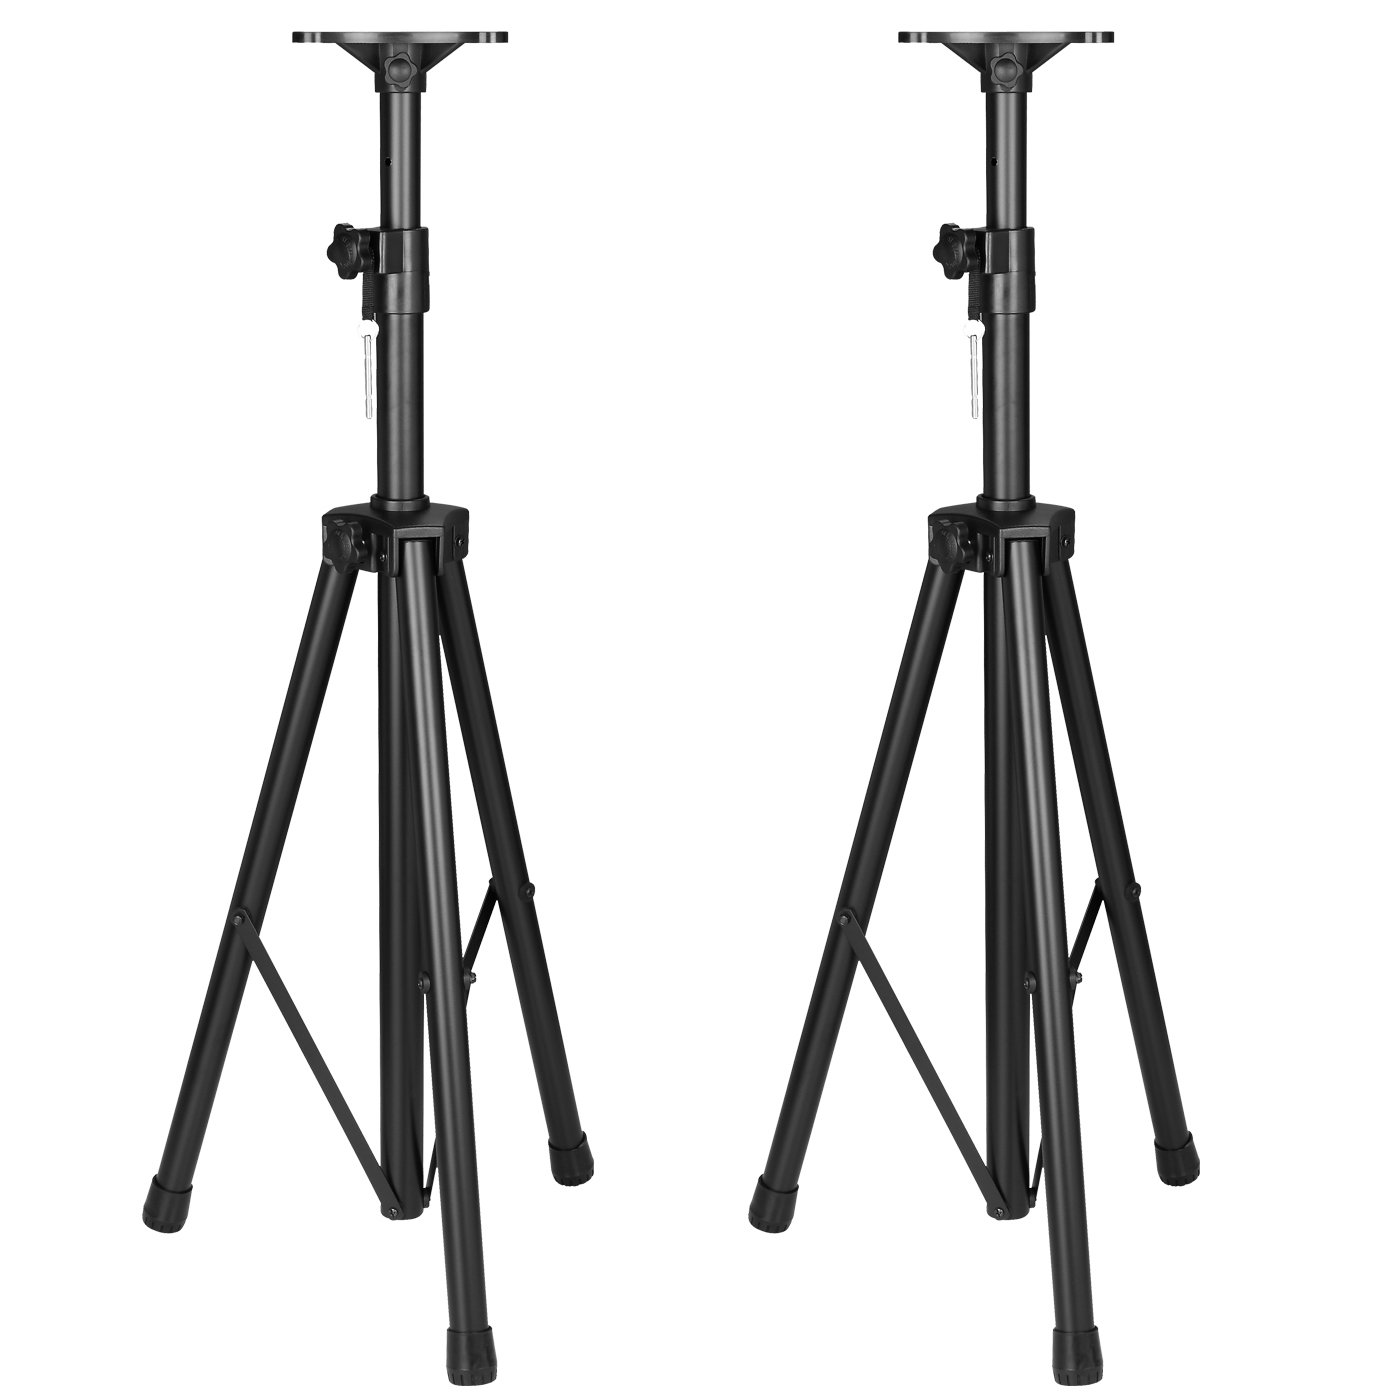 Acesonic SS-689 Professional Heavy Duty Speaker Stands (Pair) by Acesonic